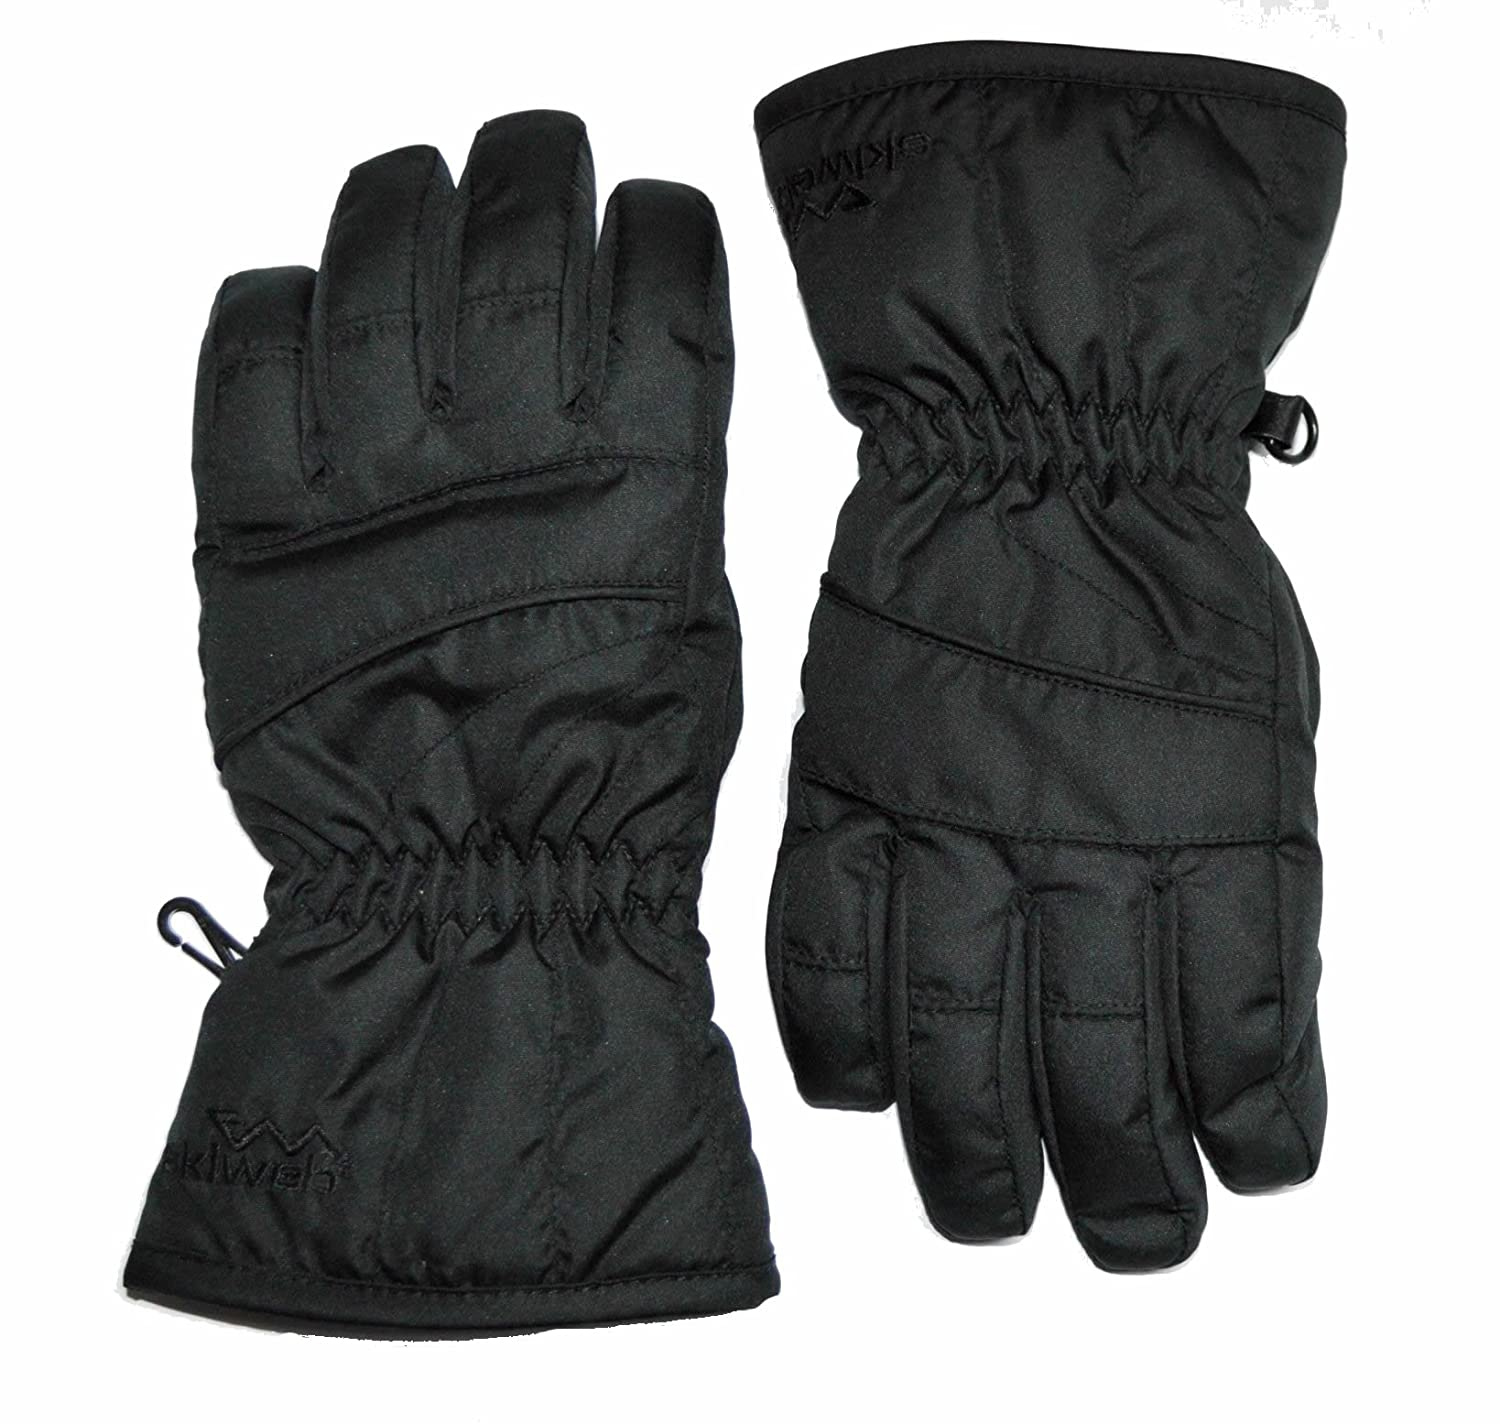 Childrens black leather gloves - Amazon Com Kids Black Ski Snowboard Gloves Sizes Age 4 12 Sports Outdoors